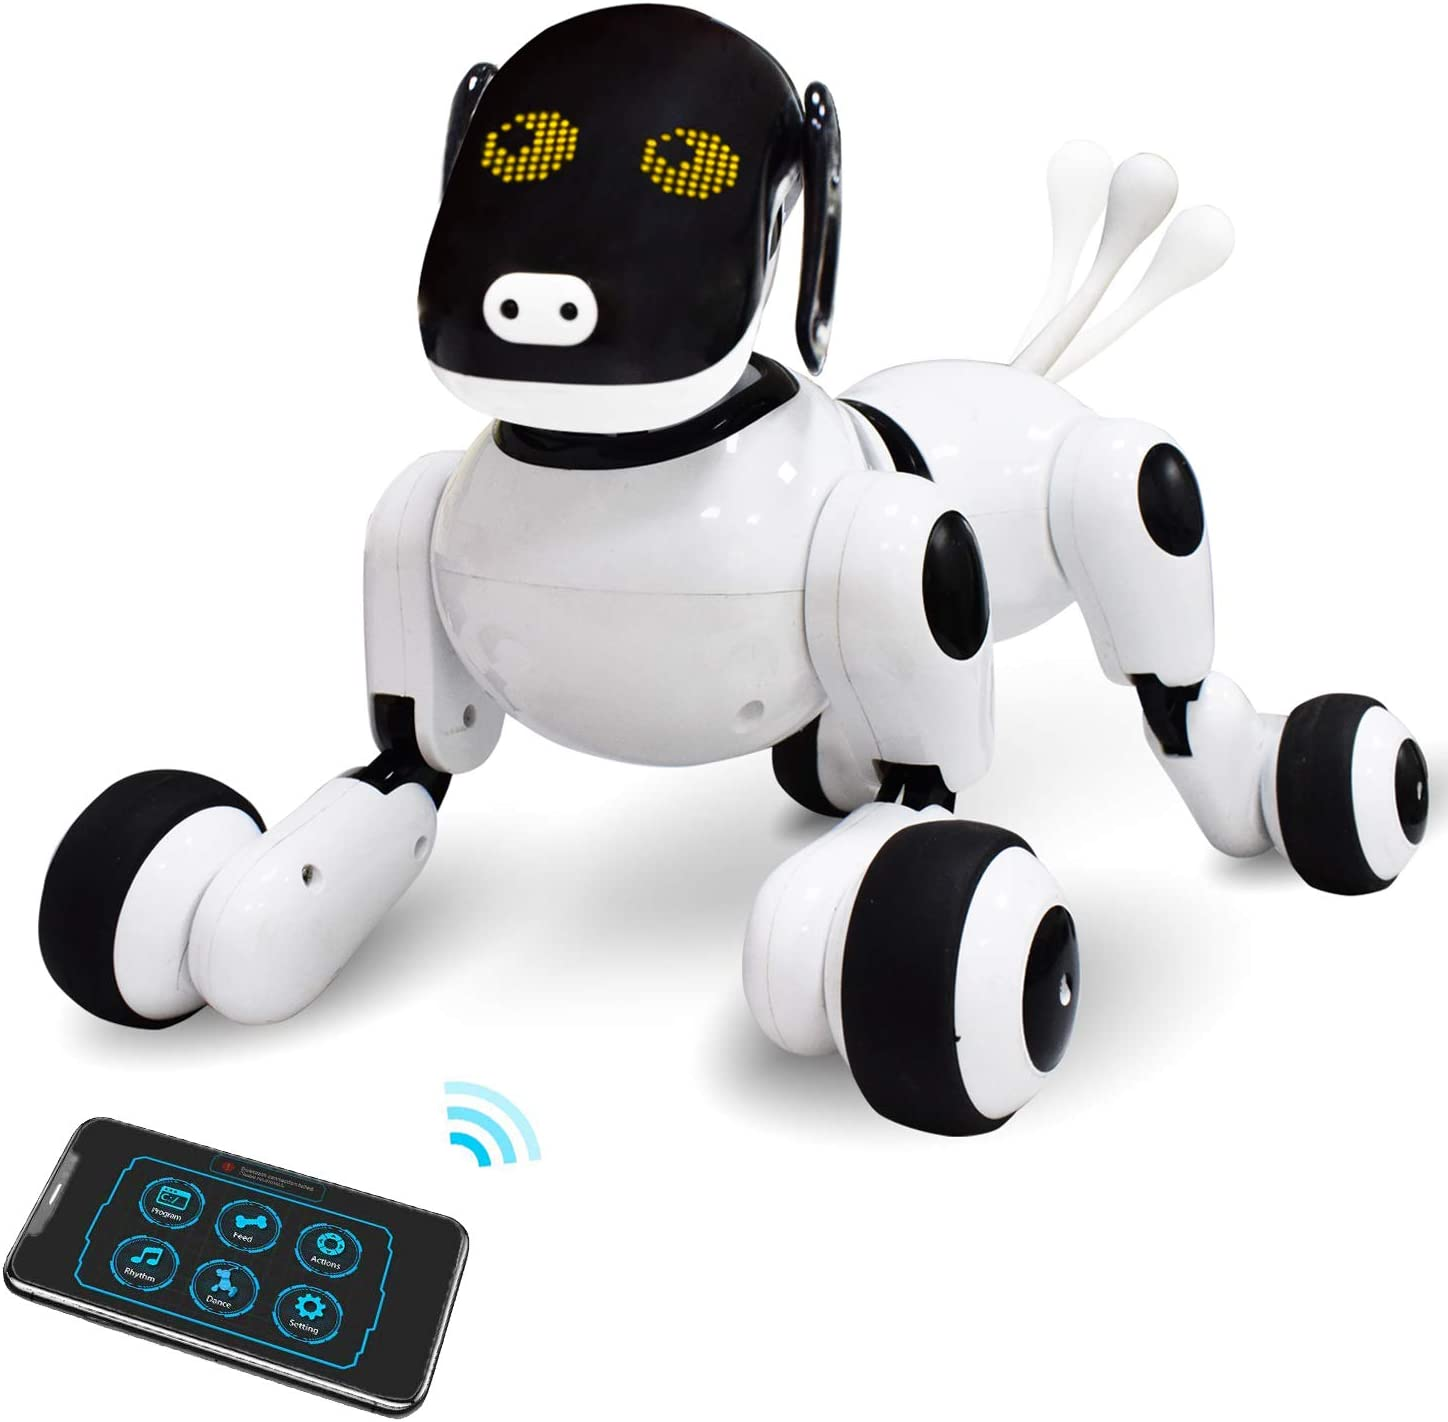 Top 10 Best Robot Pets For Kids (2020 Reviews & Buying Guide) 8